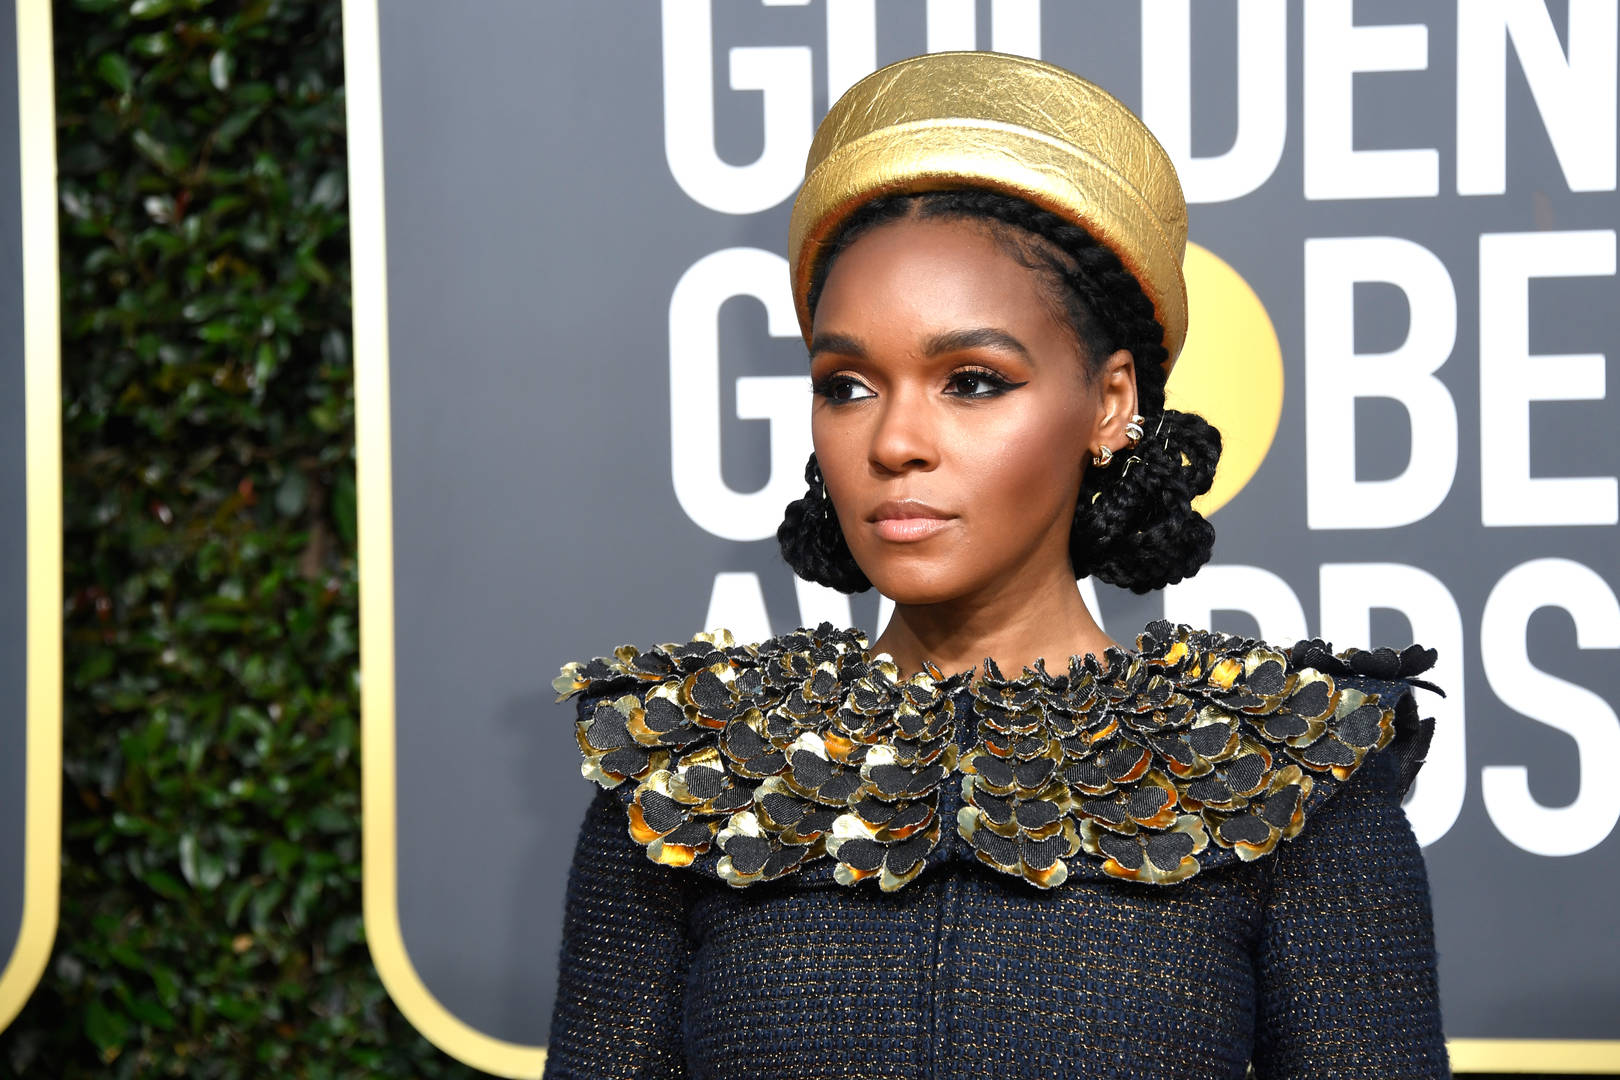 Golden Globes 2019 Red Carpet: Halle Berry Never Ages, Taraji P. Henson & More